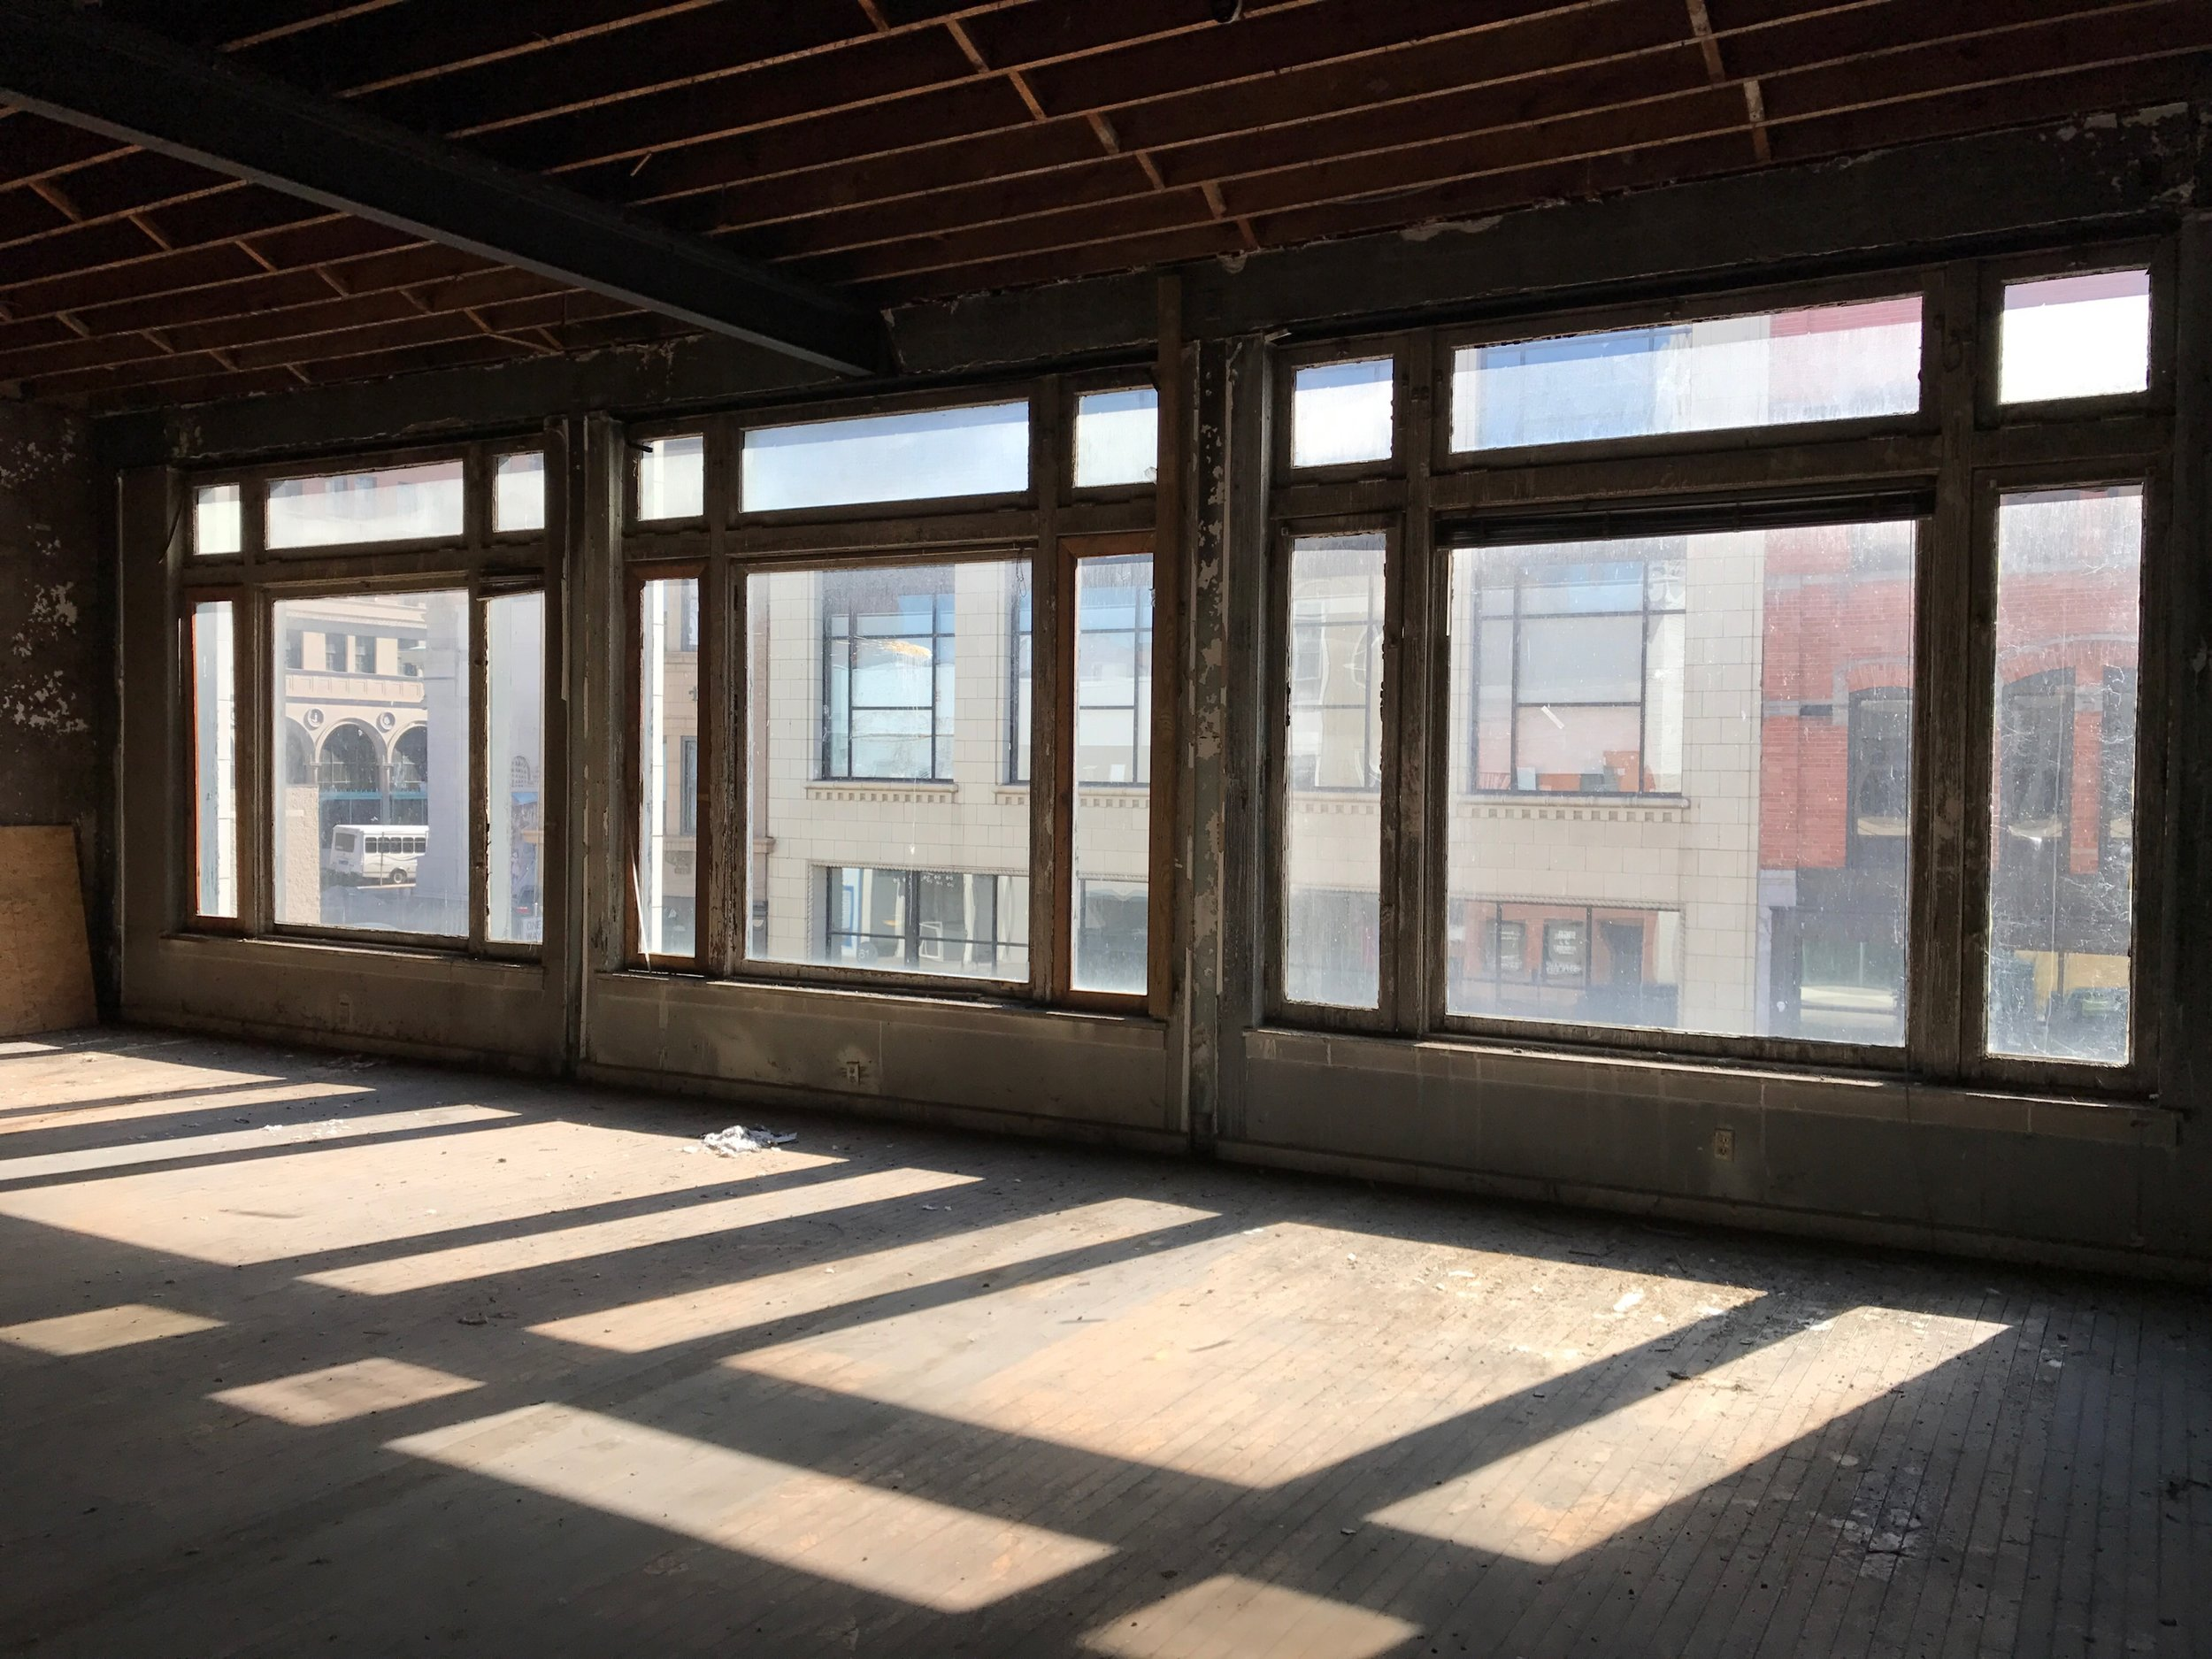 Offering beautiful views on Adams Street in downtown Toledo